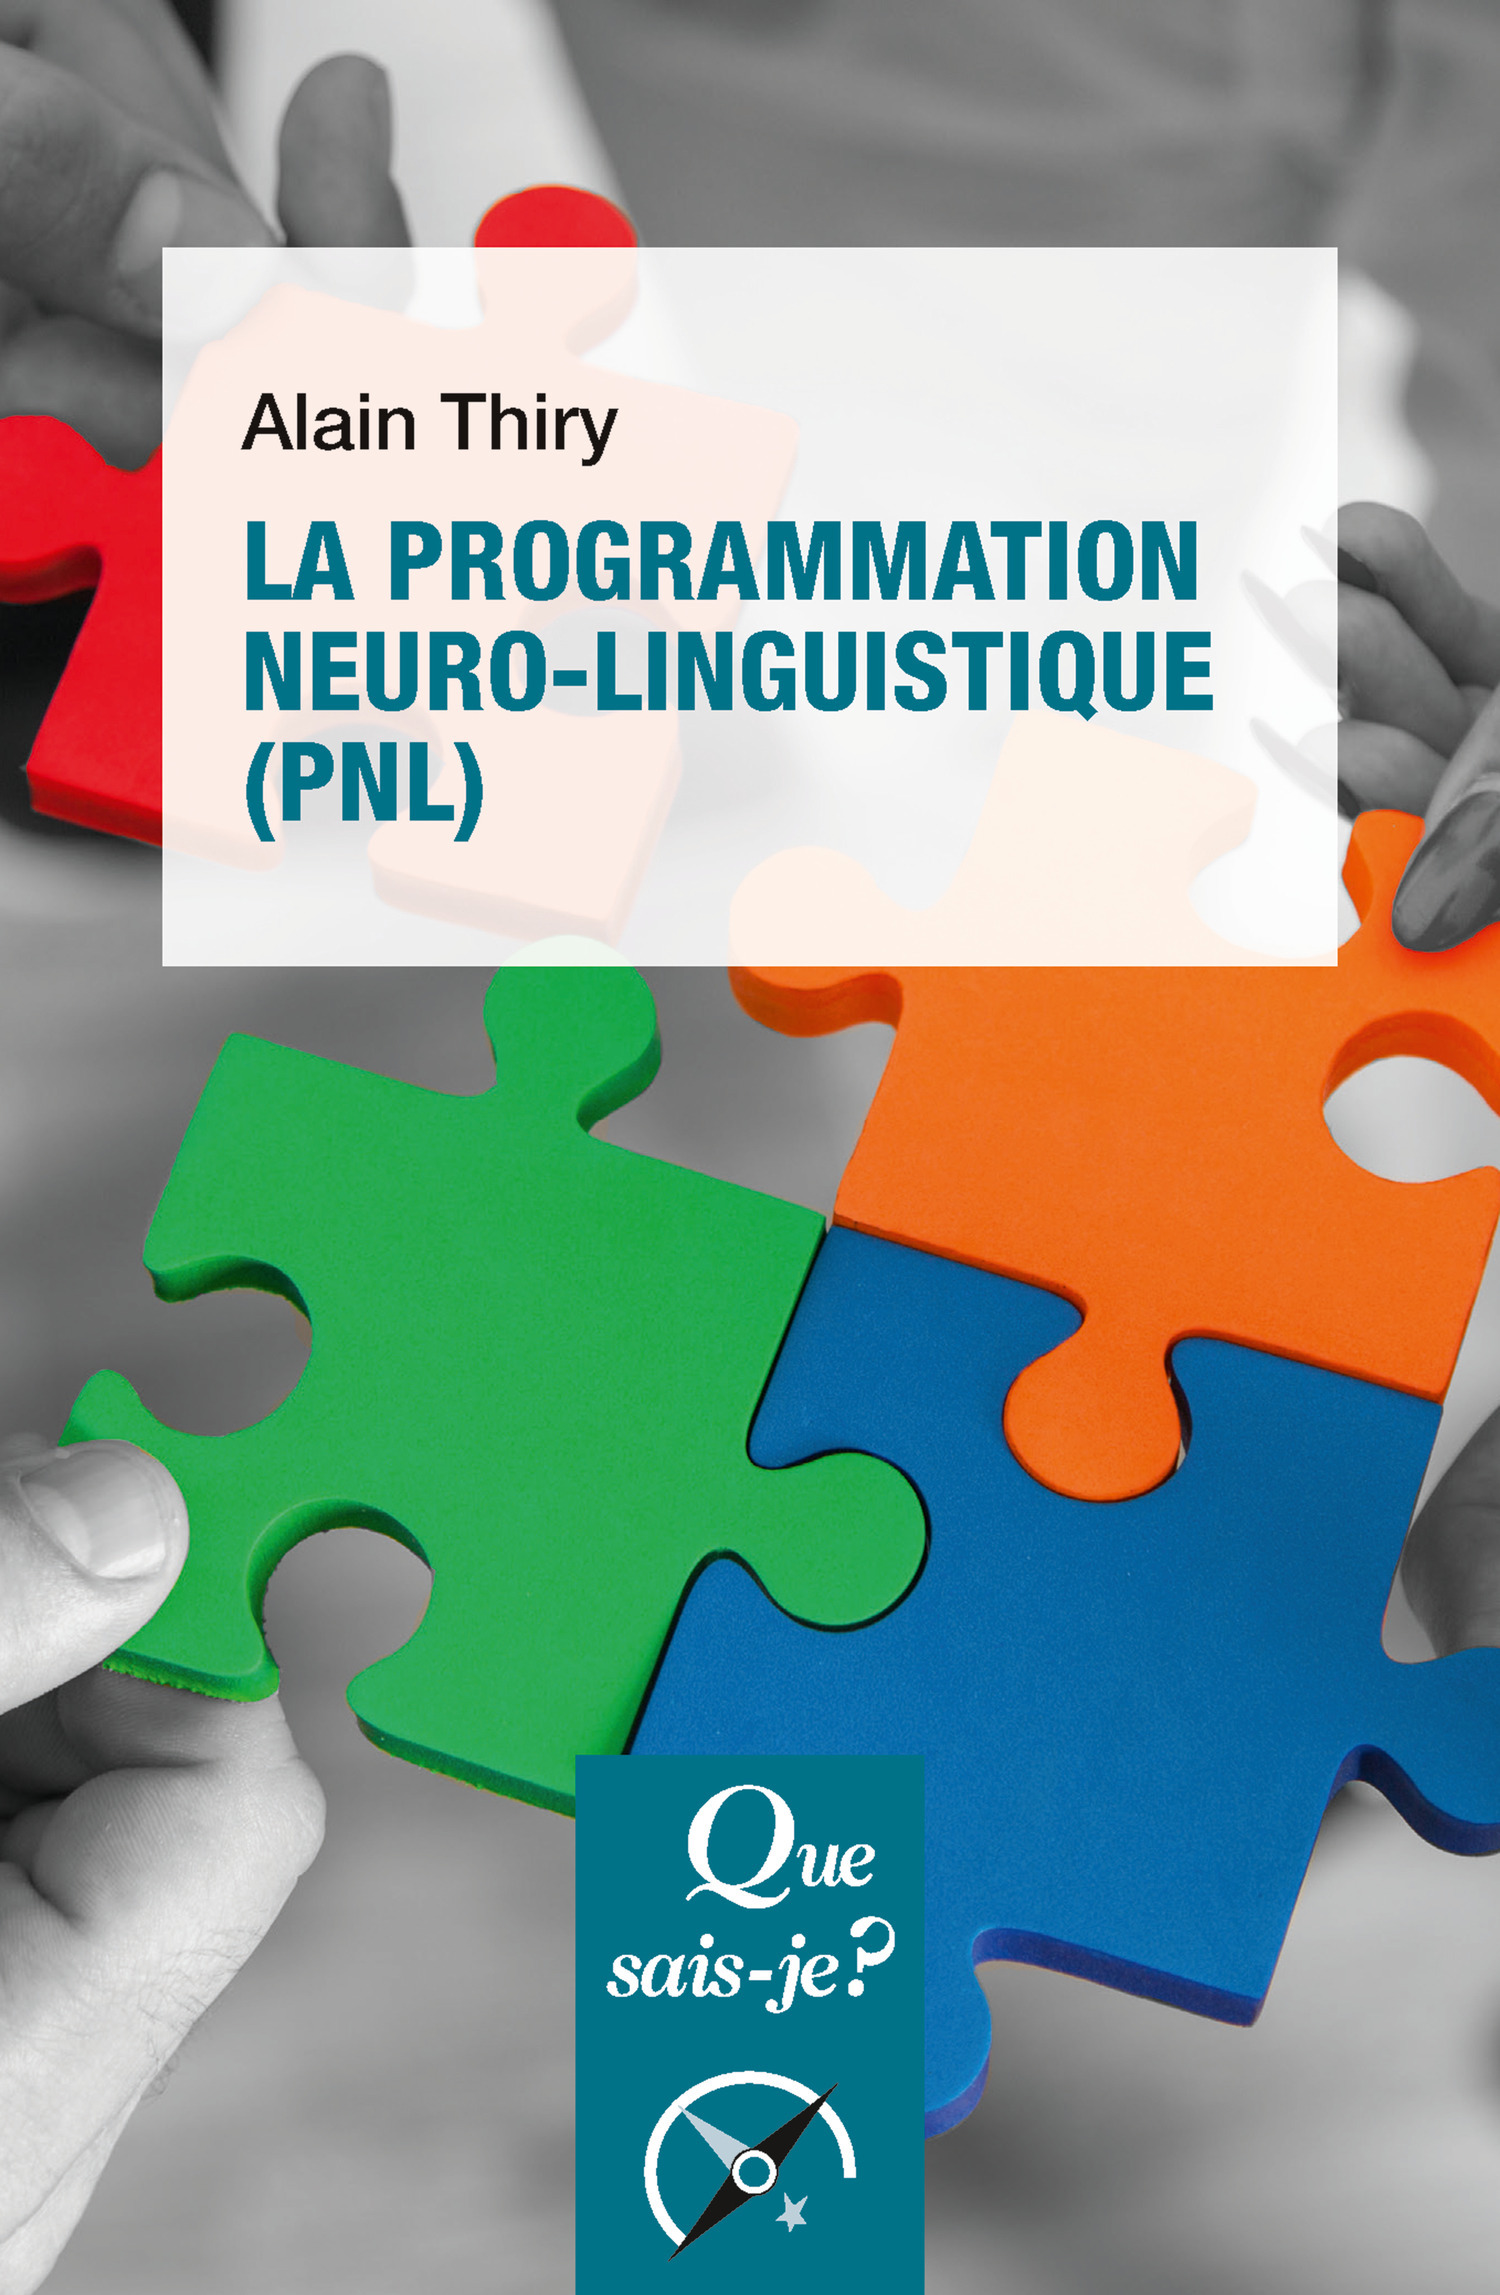 La programmation neuro-linguistique